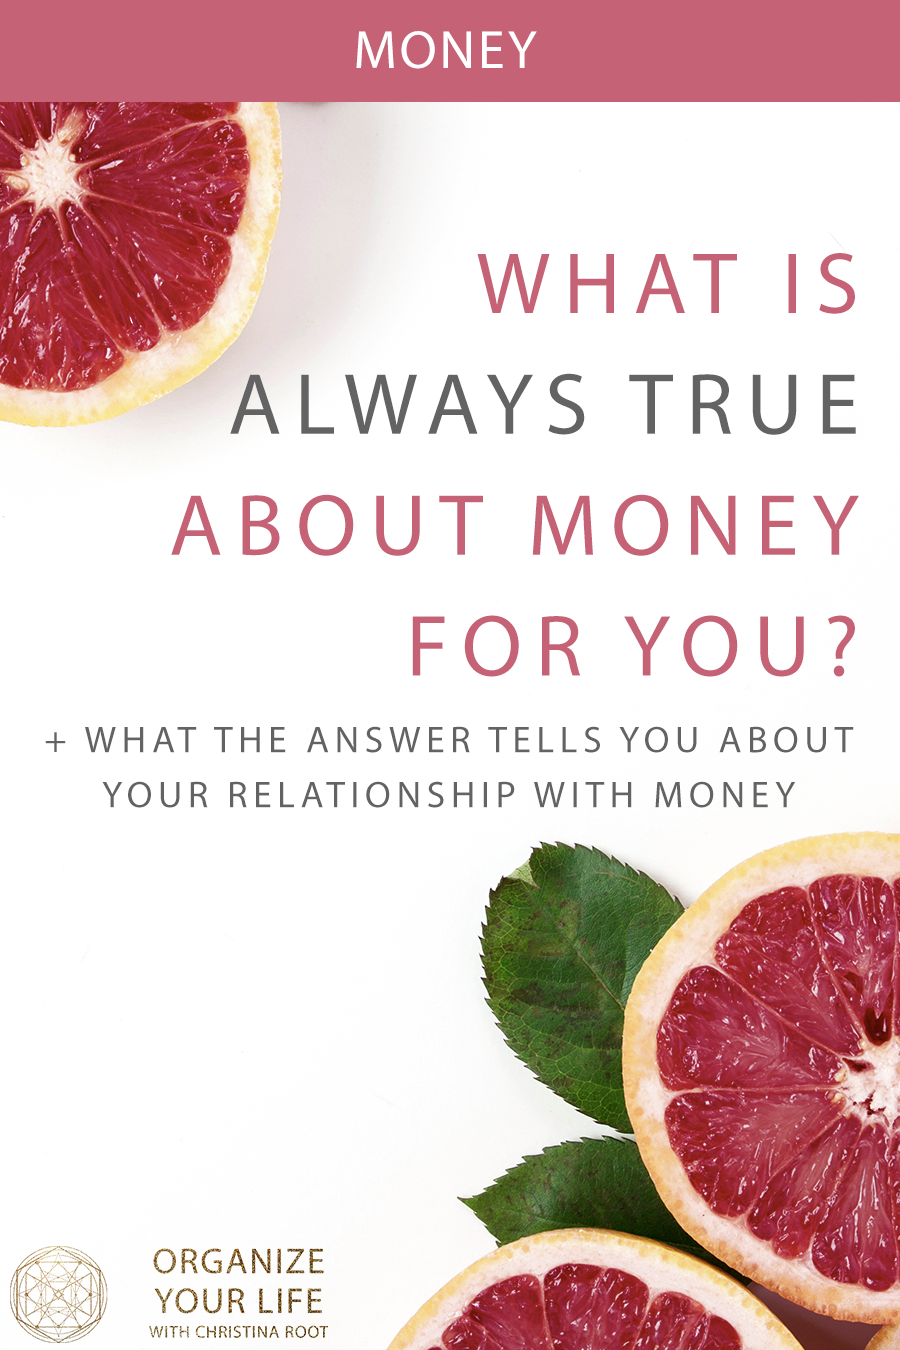 What is always true about money for you?